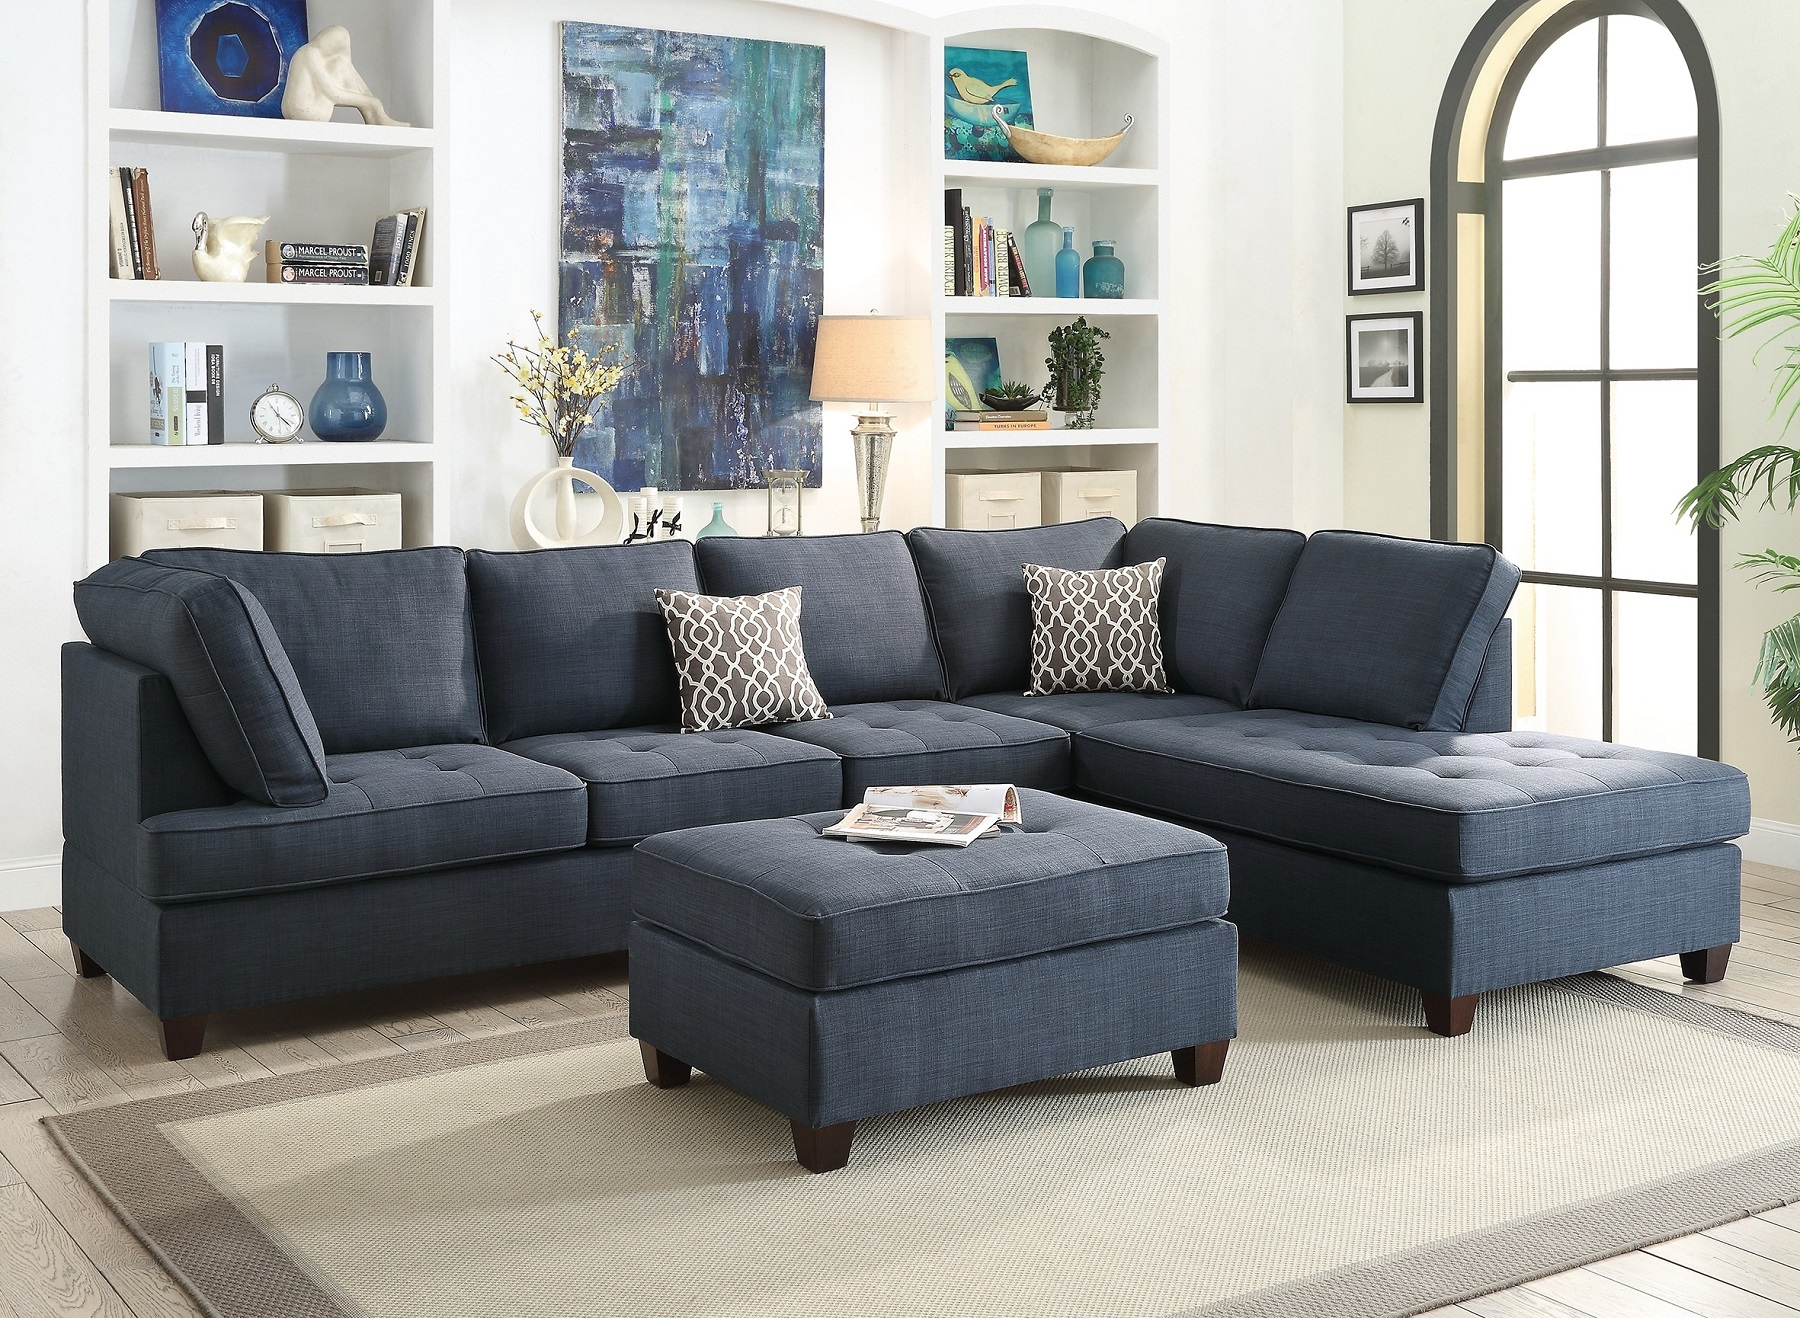 Blue Sectional Sofa Chaise Poundex #F6989 | Hot Sectionals In 4Pc Crowningshield Contemporary Chaise Sectional Sofas (View 9 of 15)